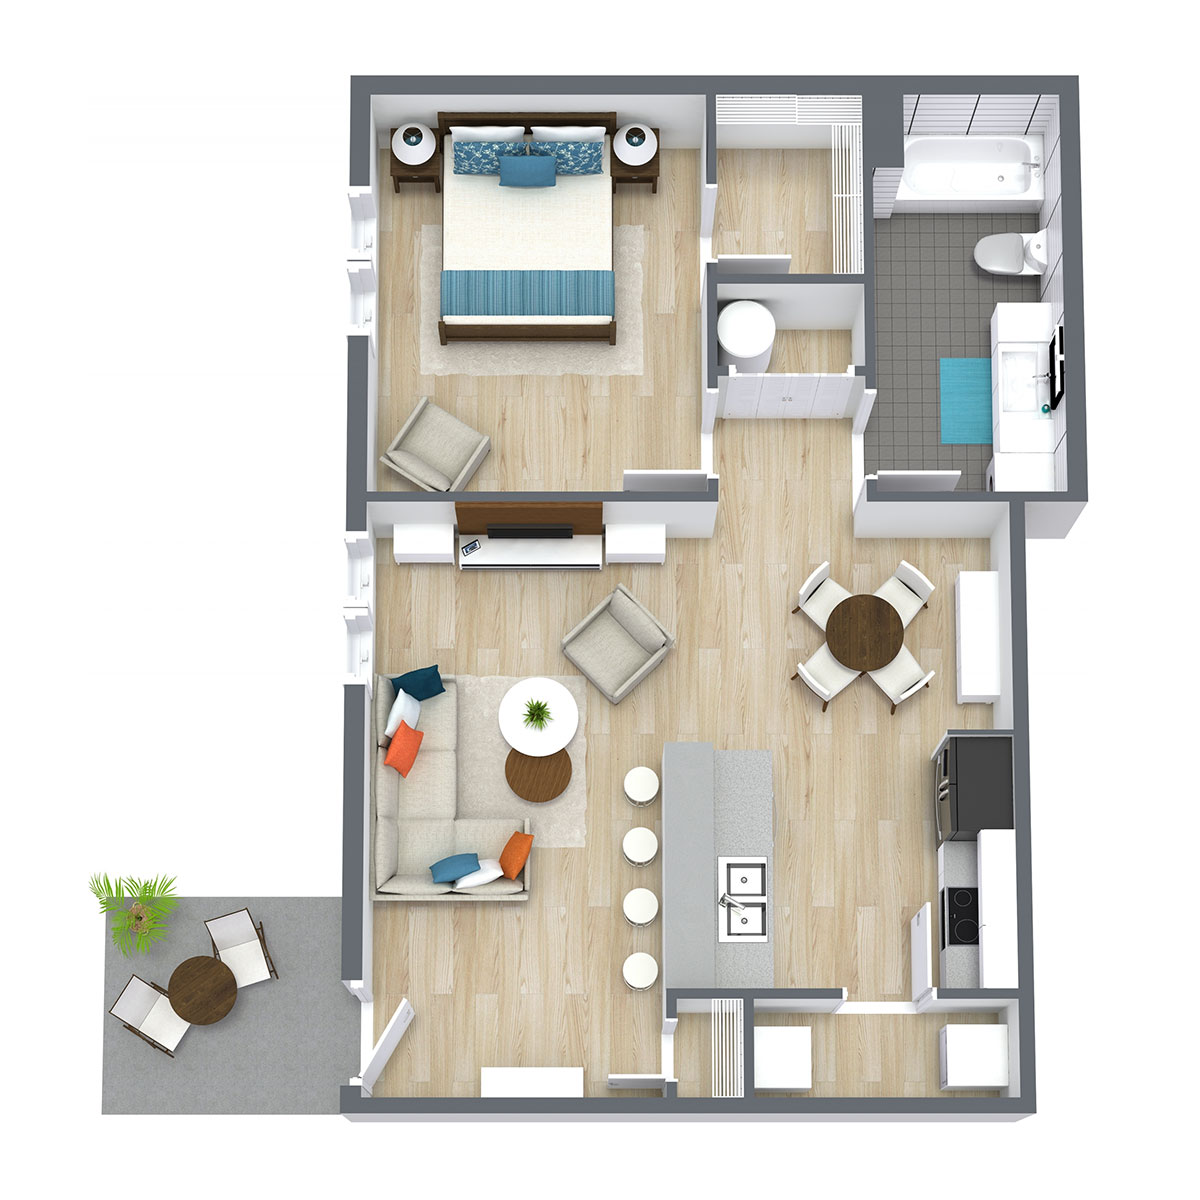 Floorplan - One Bed One Bath 690 image